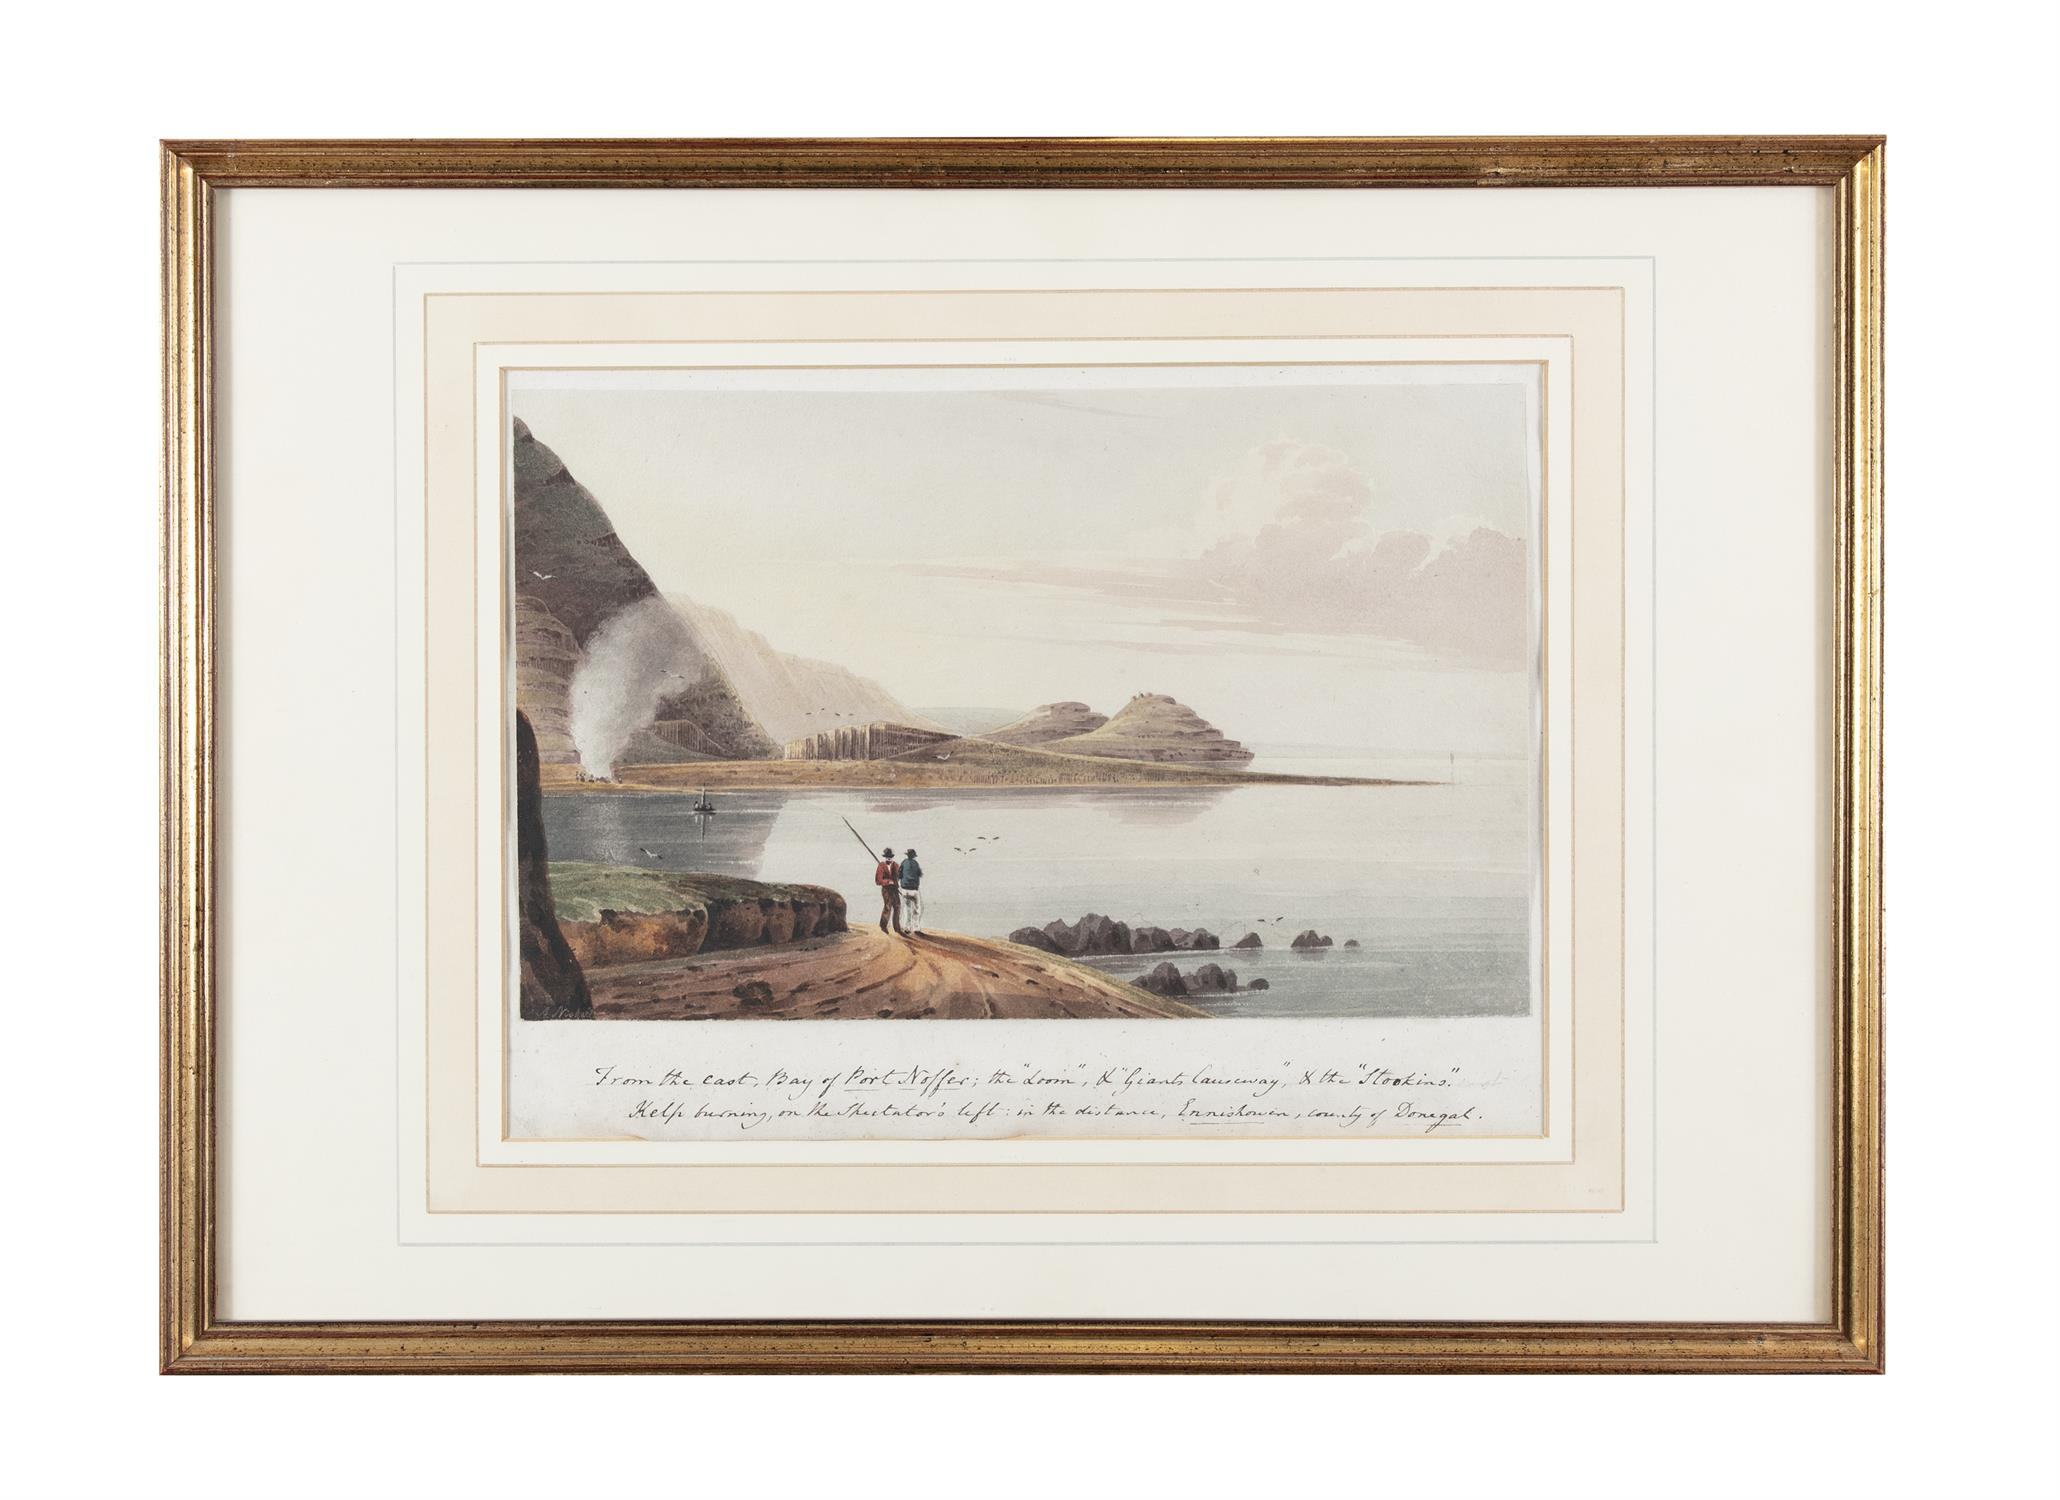 Andrew Nicholl RHA (1804-1886) From the East, Bay of Port Noffer; the 'Loom', 'Giant's Causeway' - Image 2 of 5